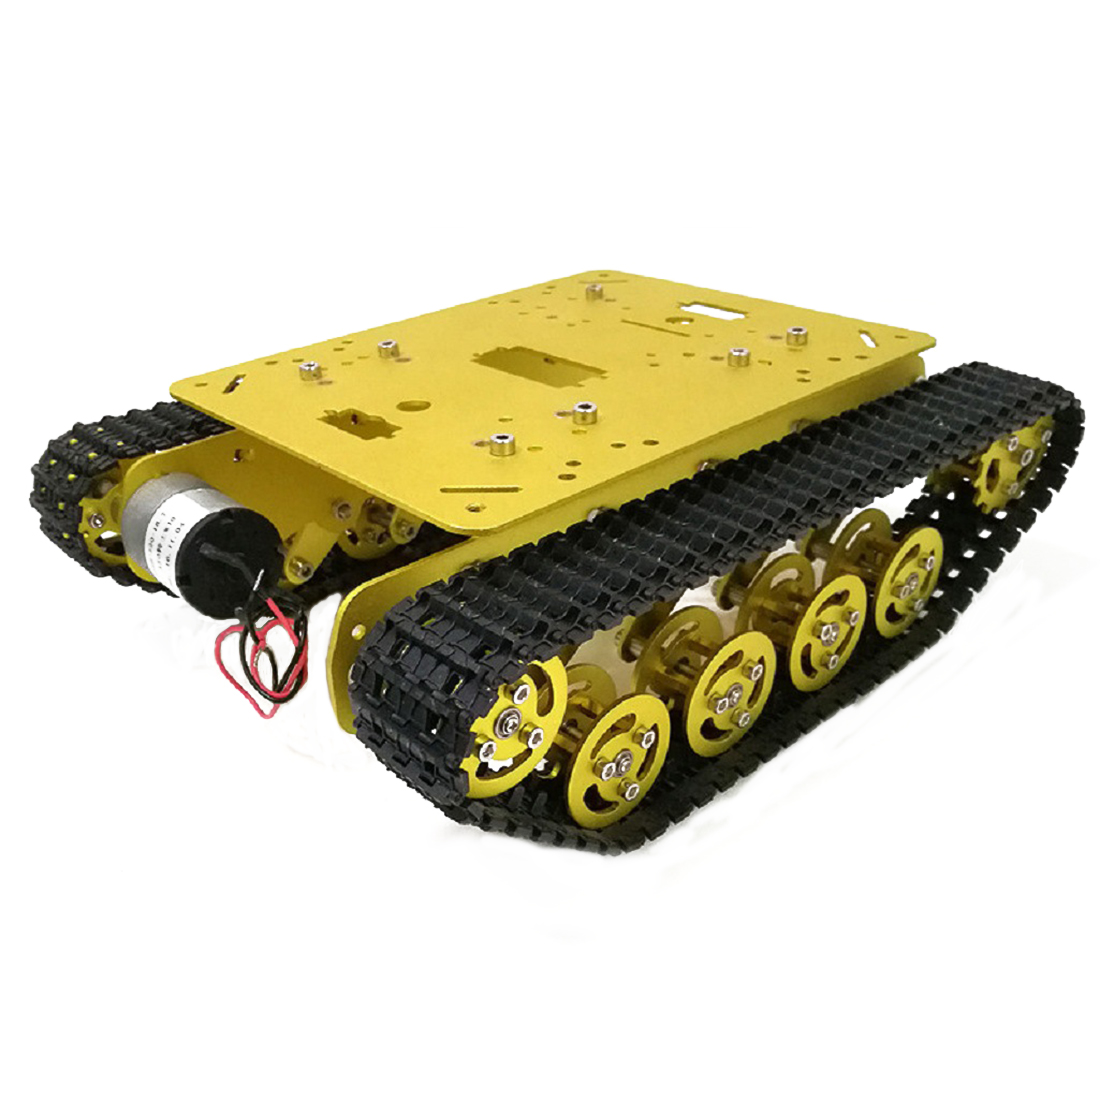 Rowsfire 1Set 12V Arduino DIY Tracked Robot Smart Car Metal Tank Chassis Kit - Golden/Black